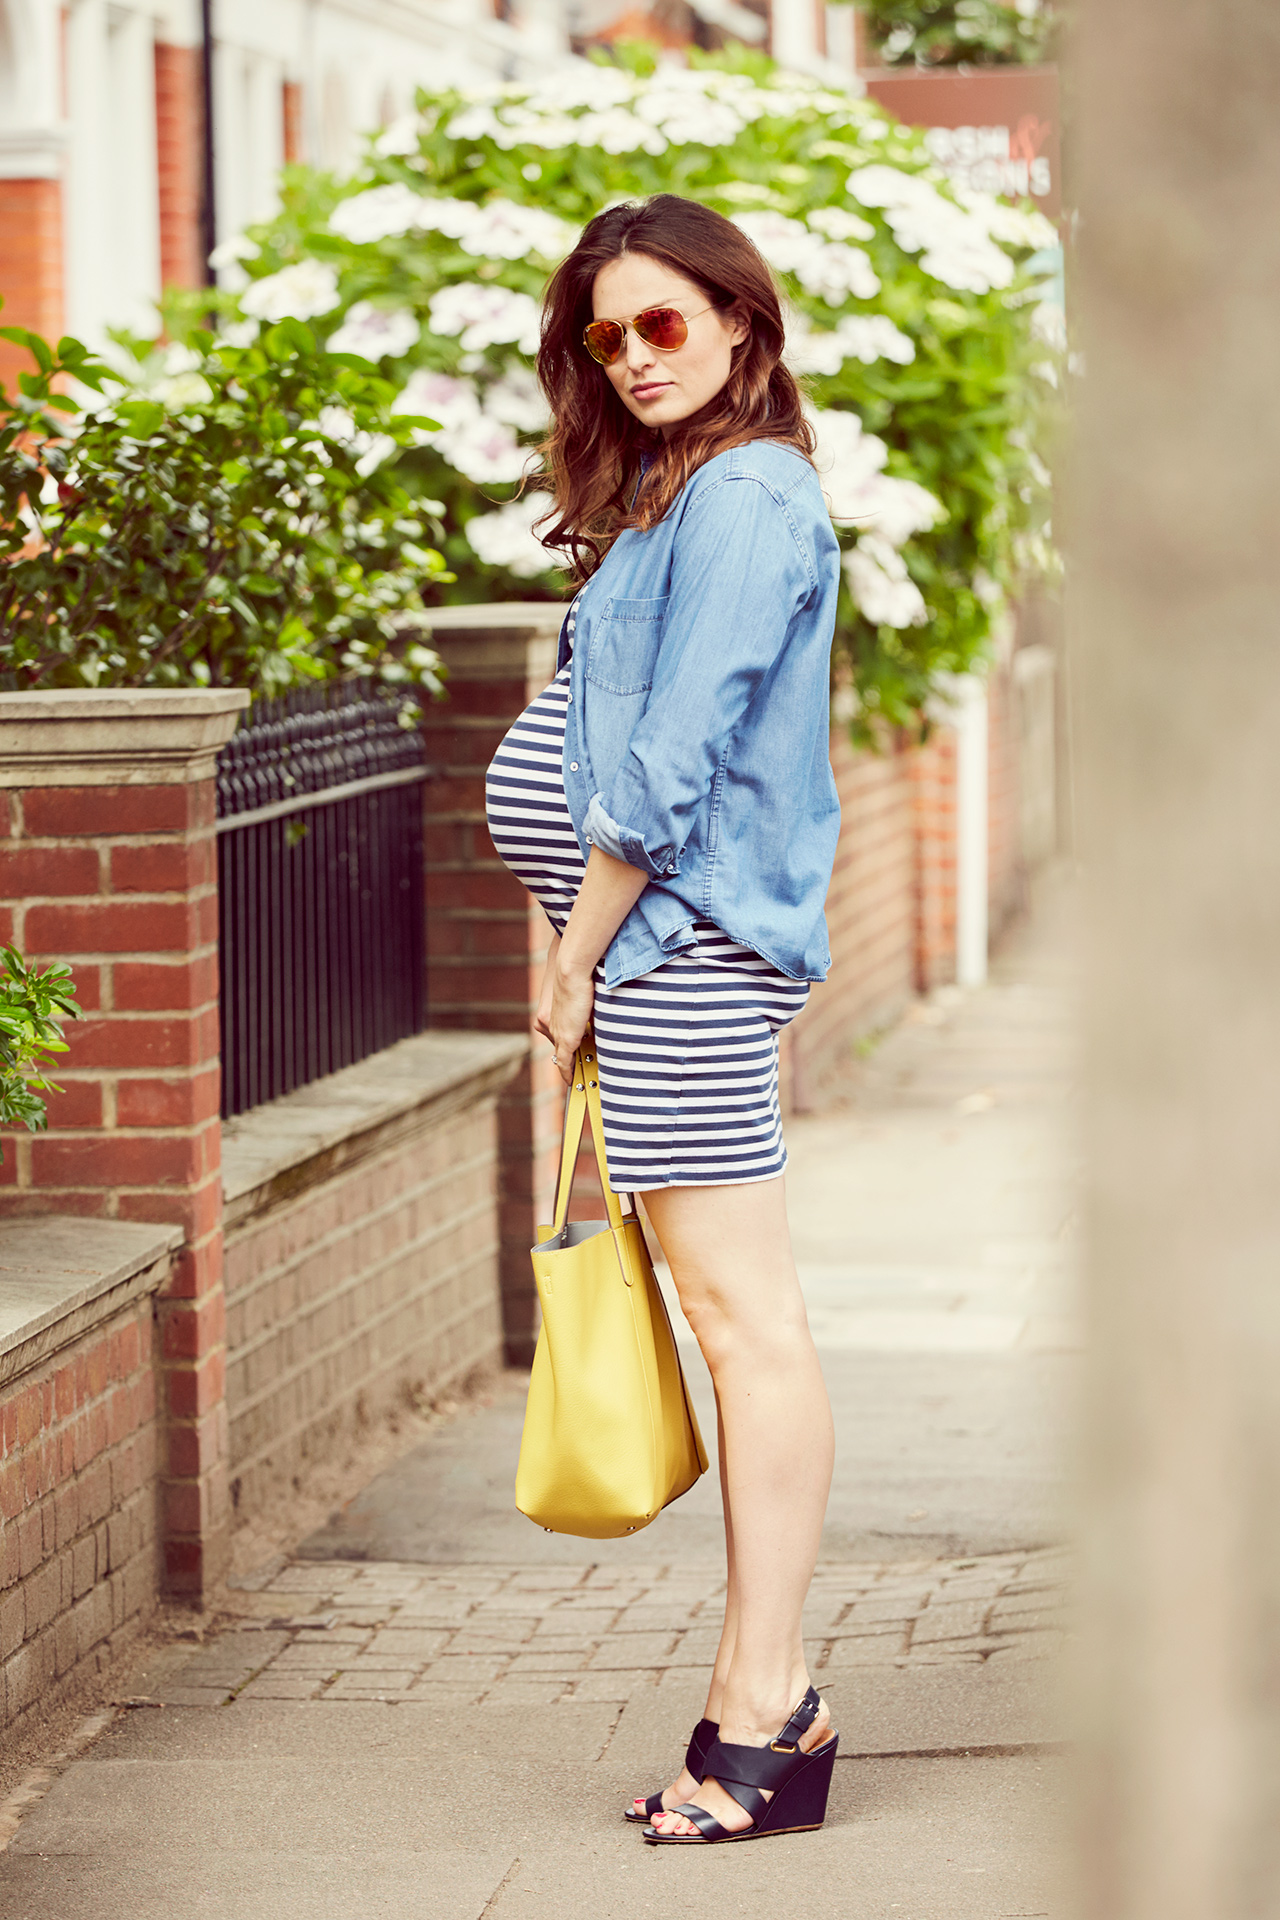 Pregnant mum poses with handbag